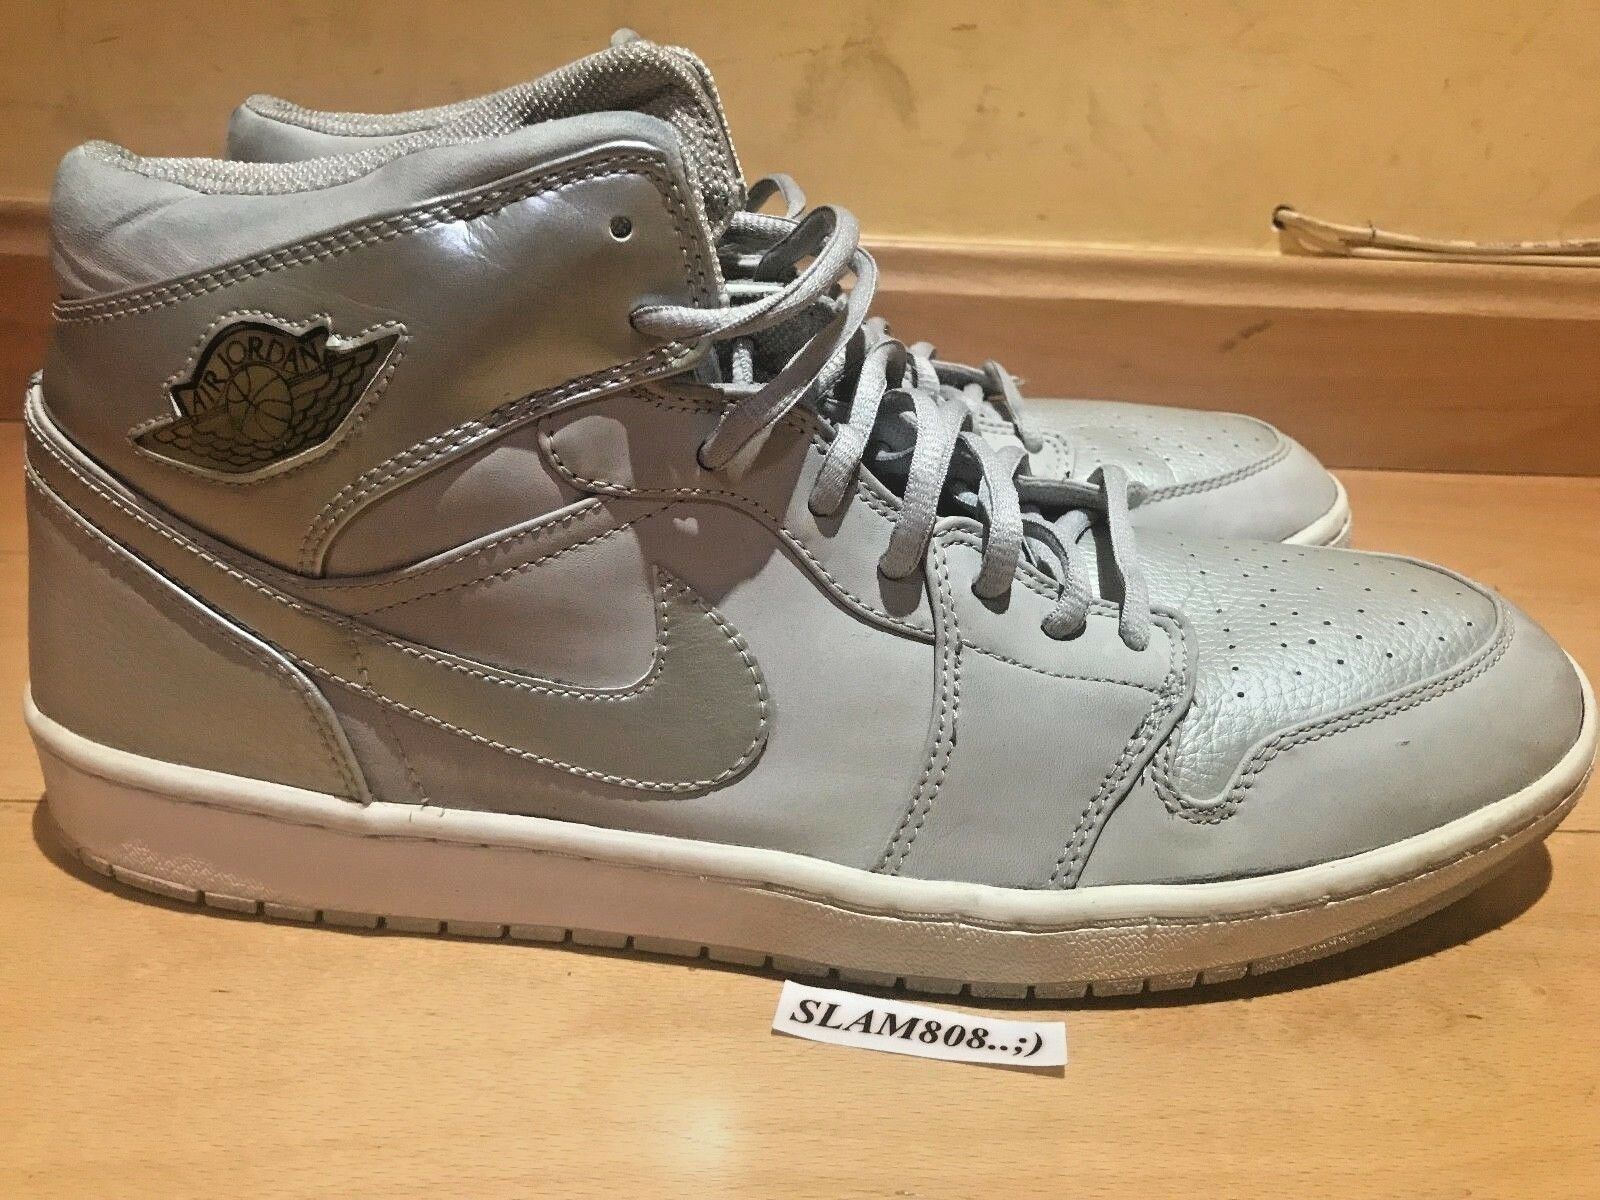 NIKE AIR JORDAN 1 RETRO+ 2001 GREY METALLIC SILVER SZ15 UK14 EU49.5 RARE